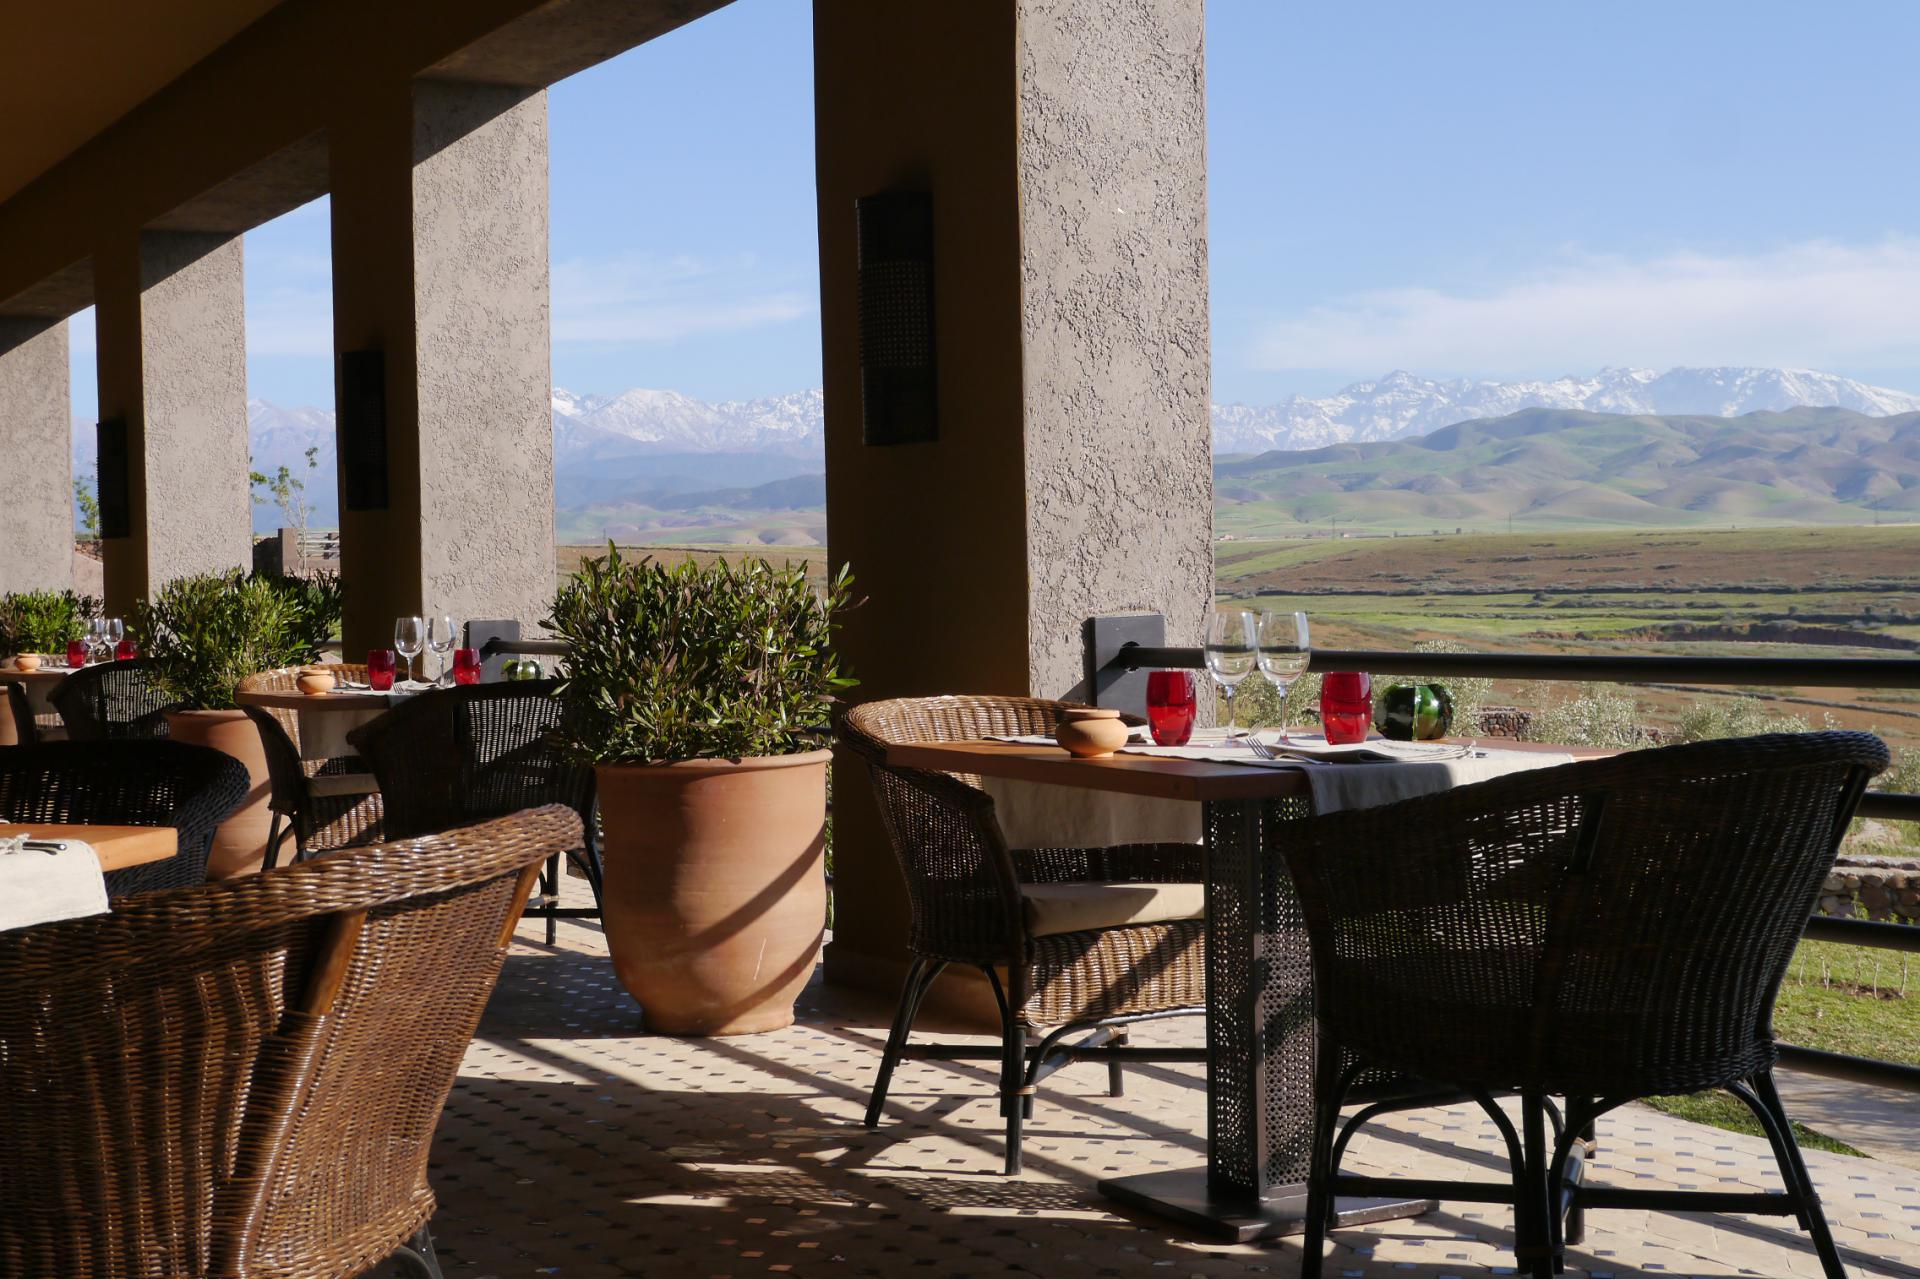 boutique-hotel-Le-Palais-Paysan-Marrakech-Terrace-1-17-3-2